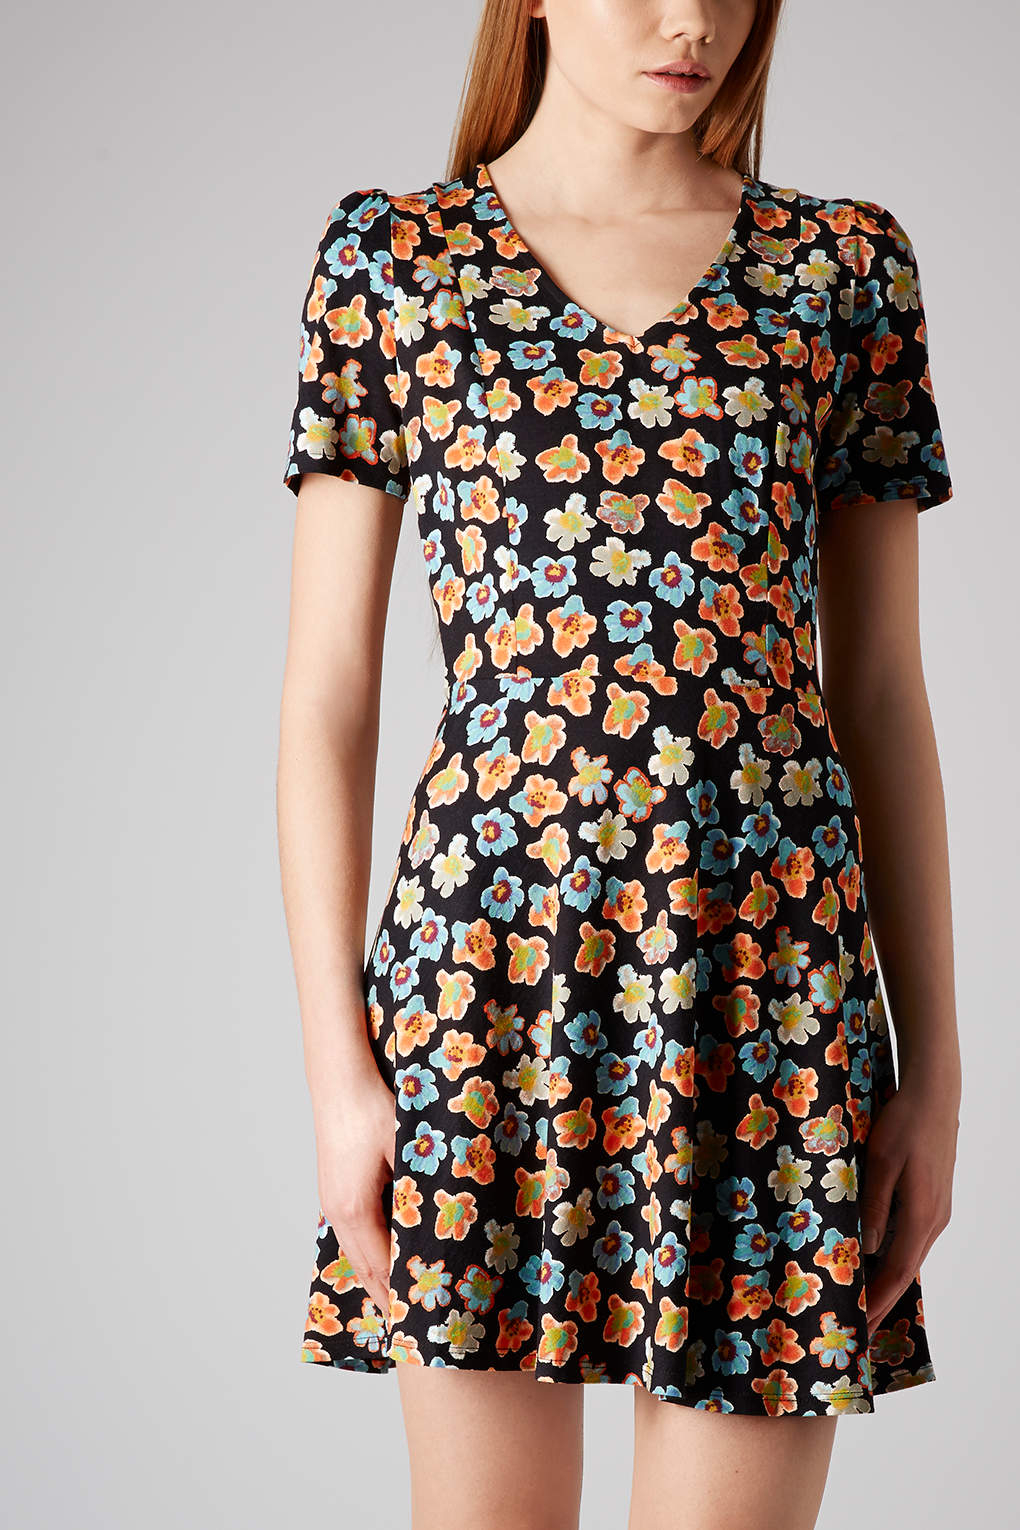 Topshop Ditsy Floral Flippy Dress